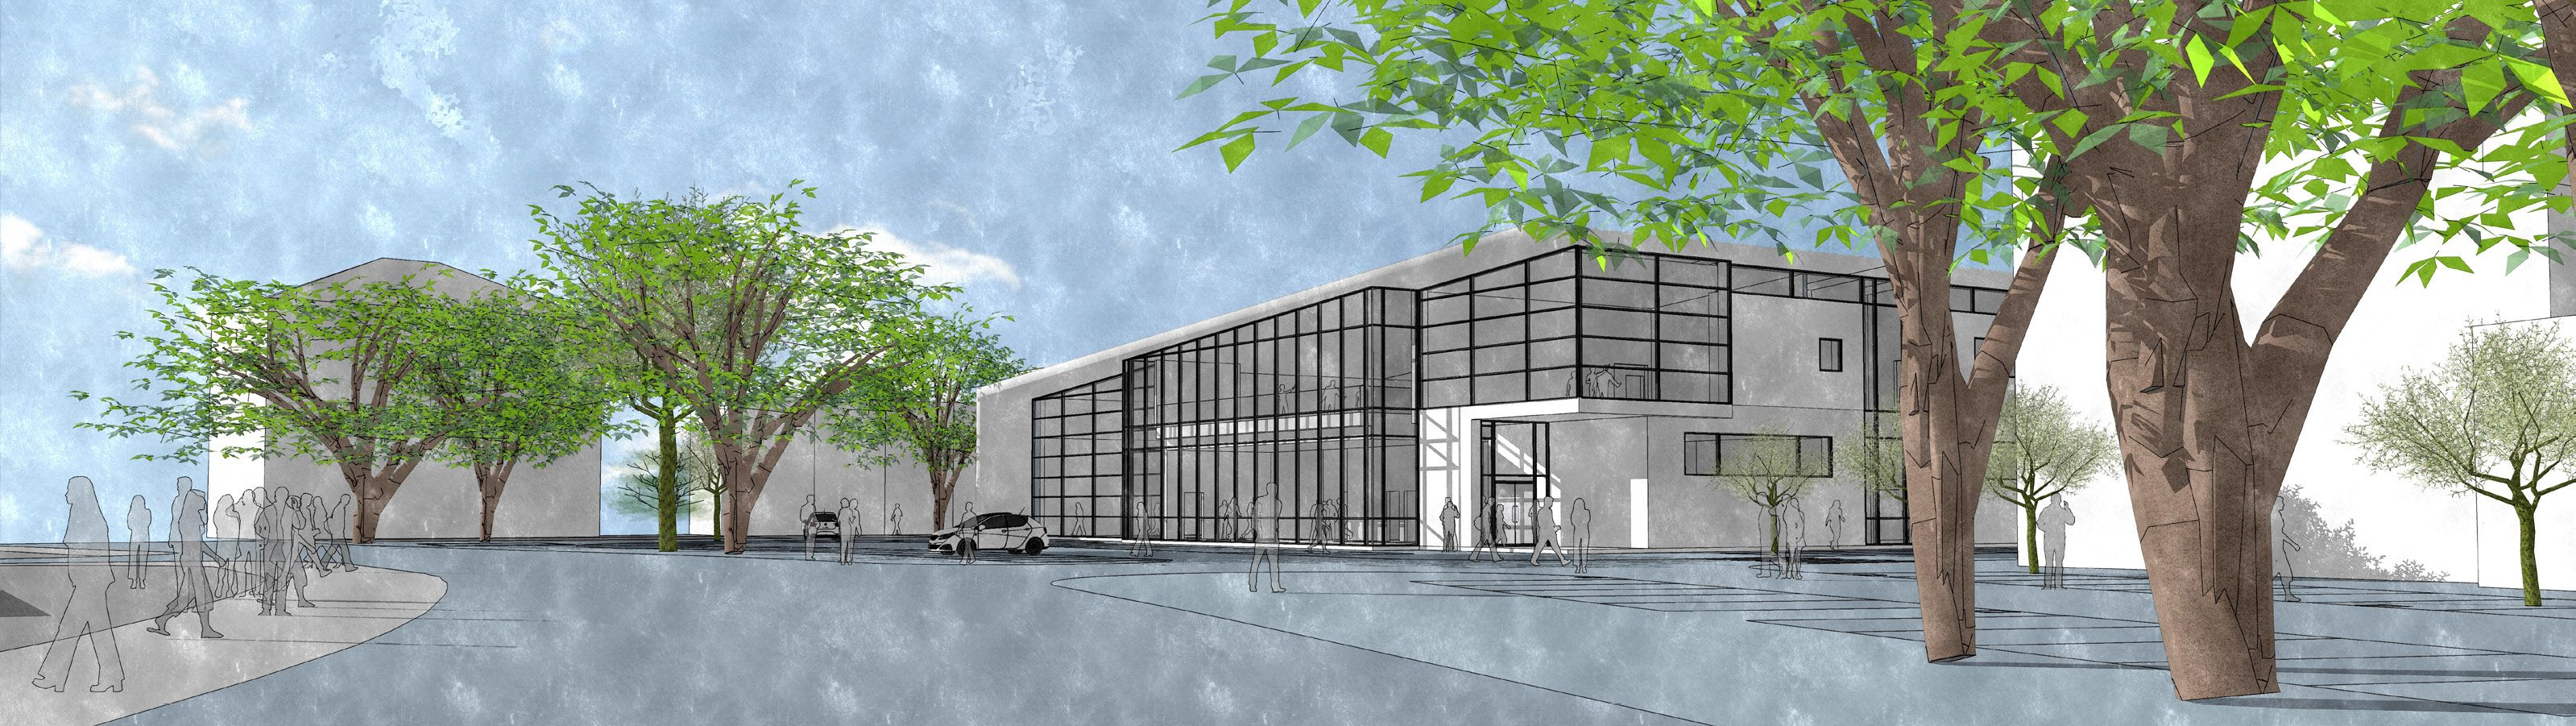 Proposed LC view from west